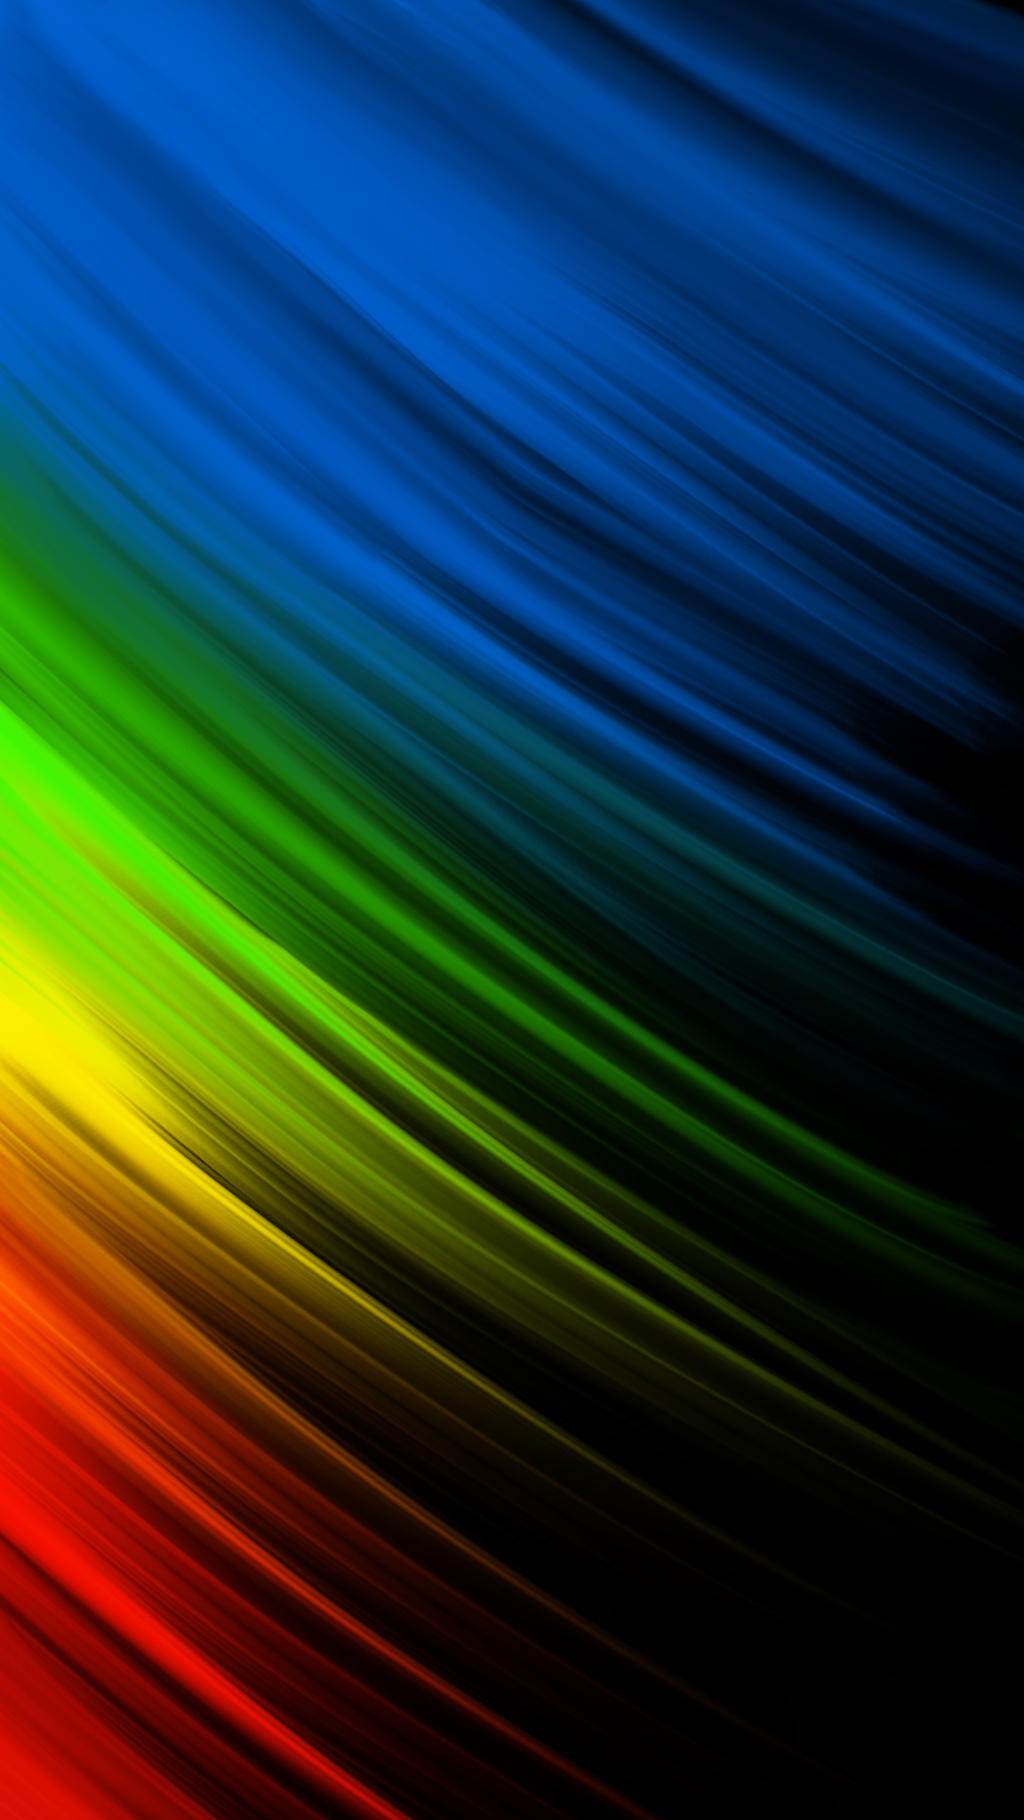 Color rays on black 1440x2560 wallpaper by el3aleyle on - Android wallpaper reddit ...